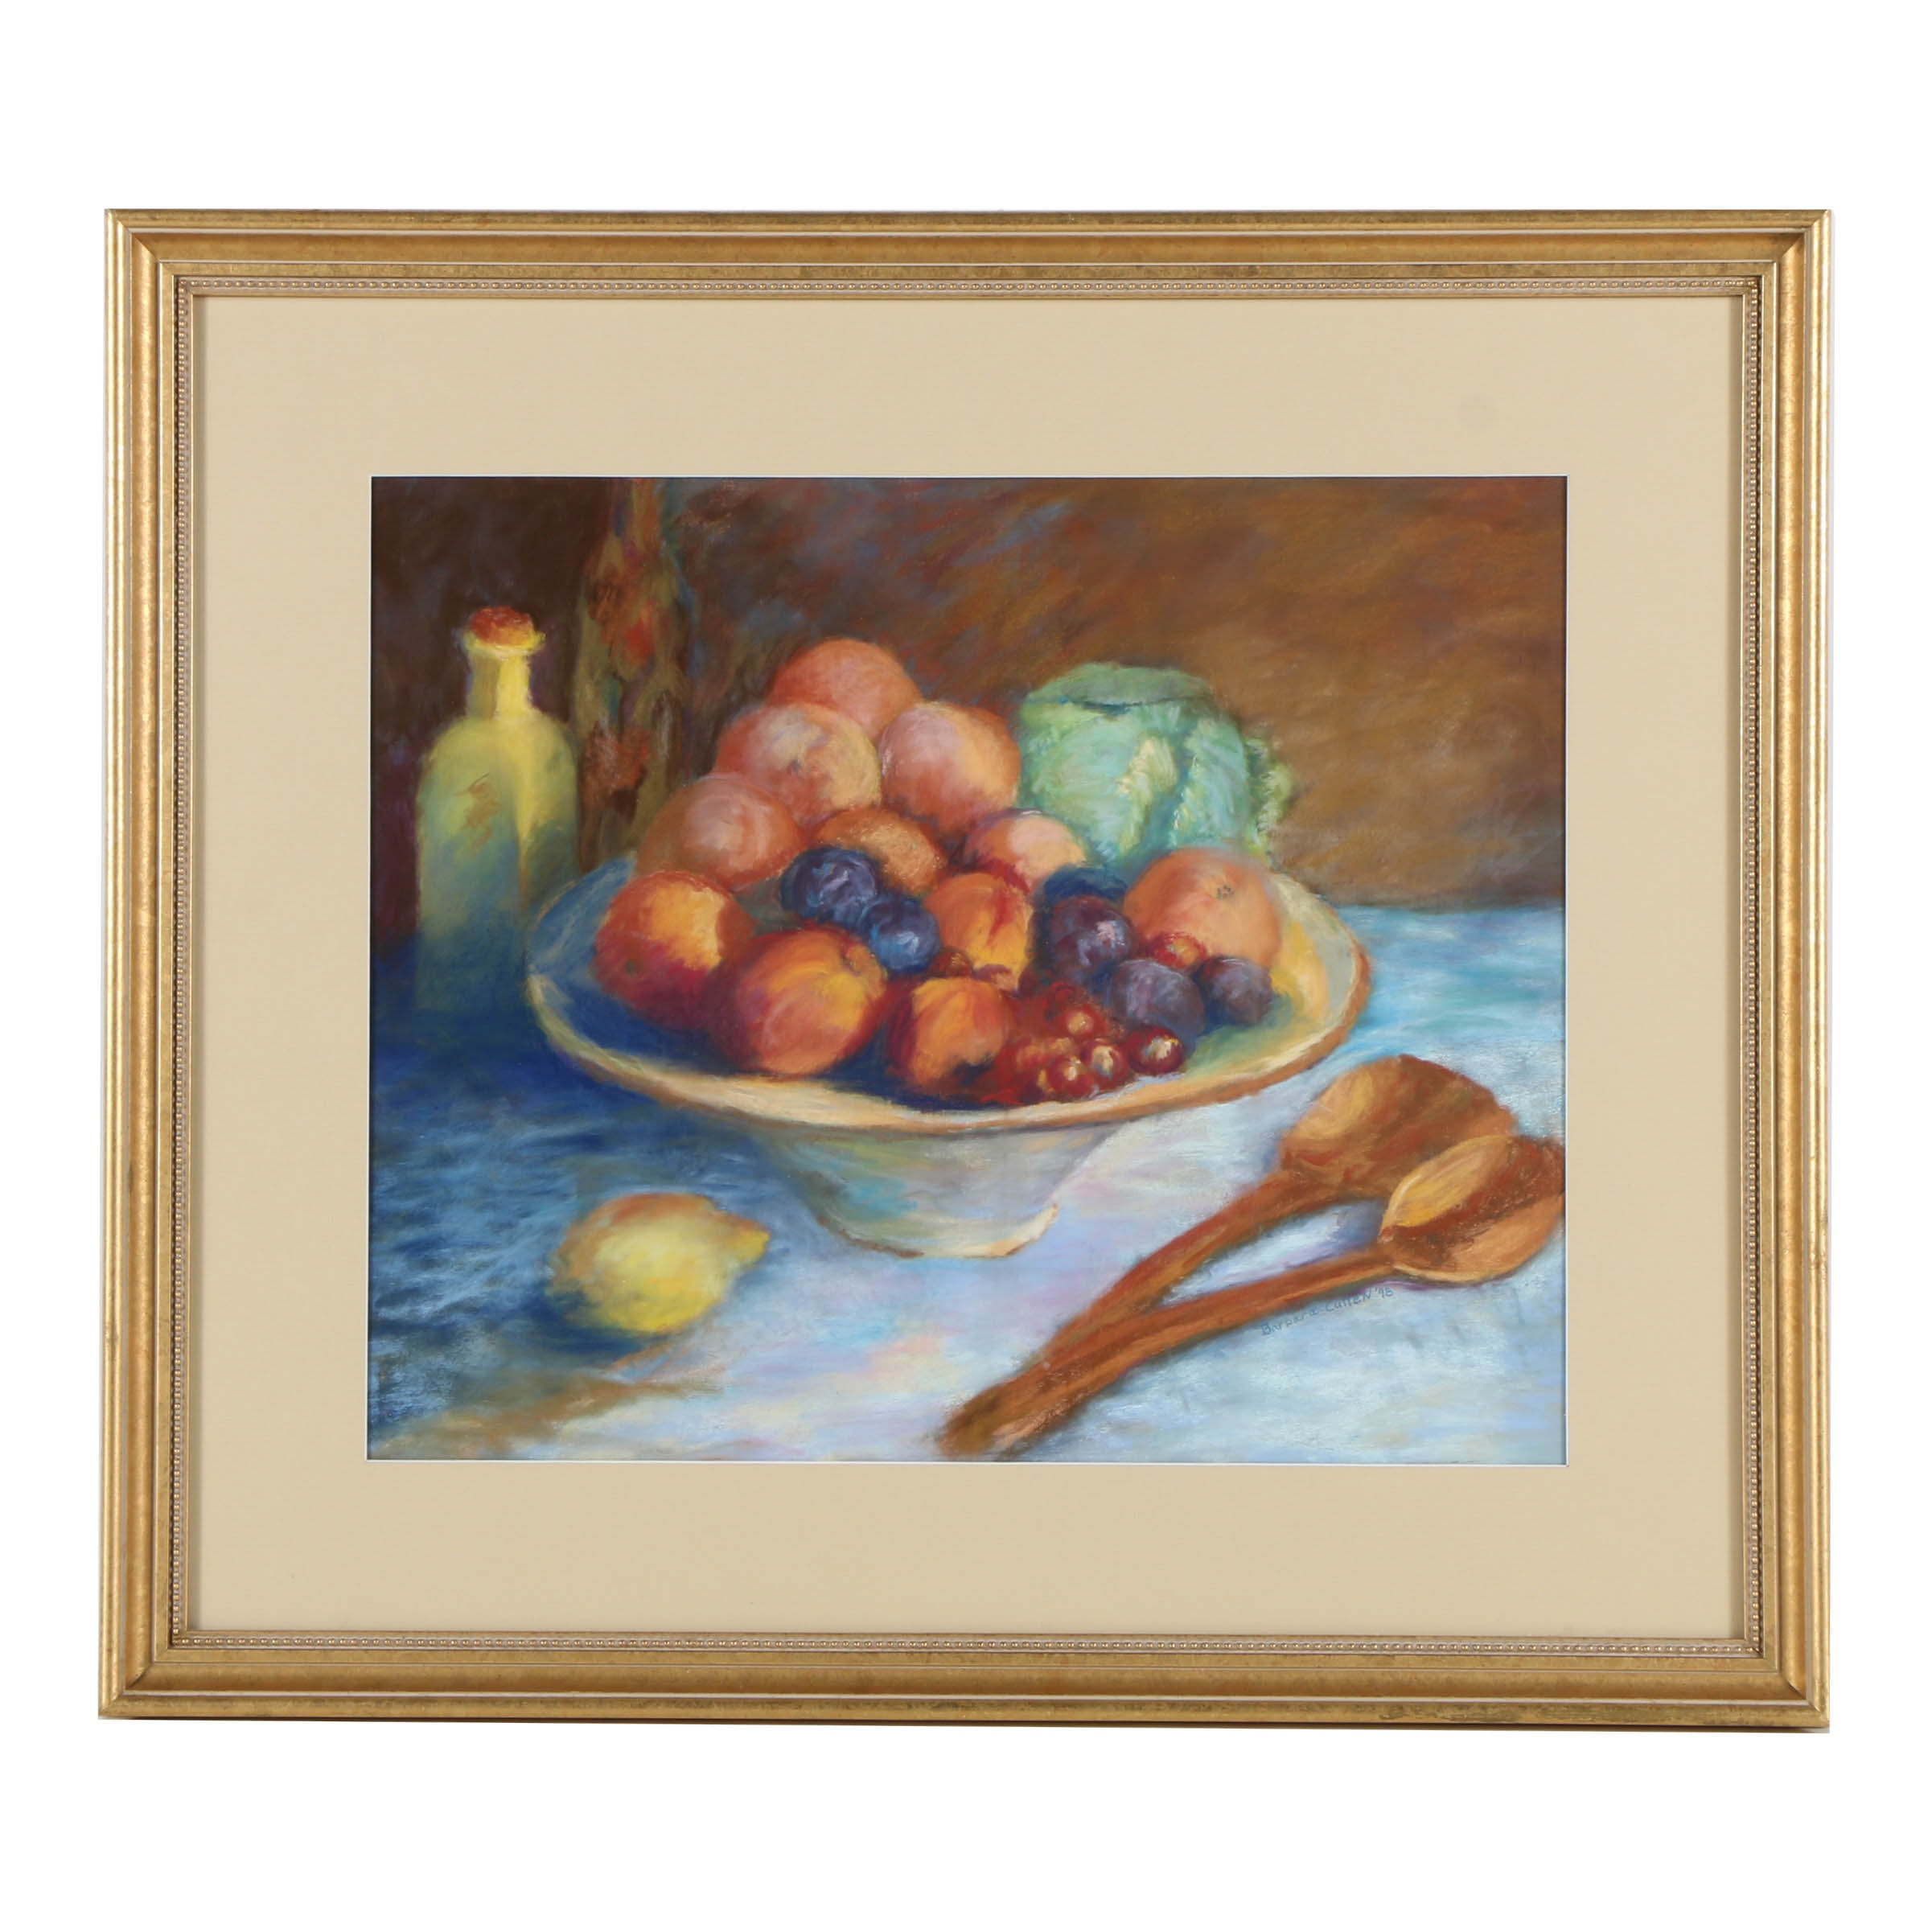 Barbara Cullen Pastel Drawing on Paper of a Still Life